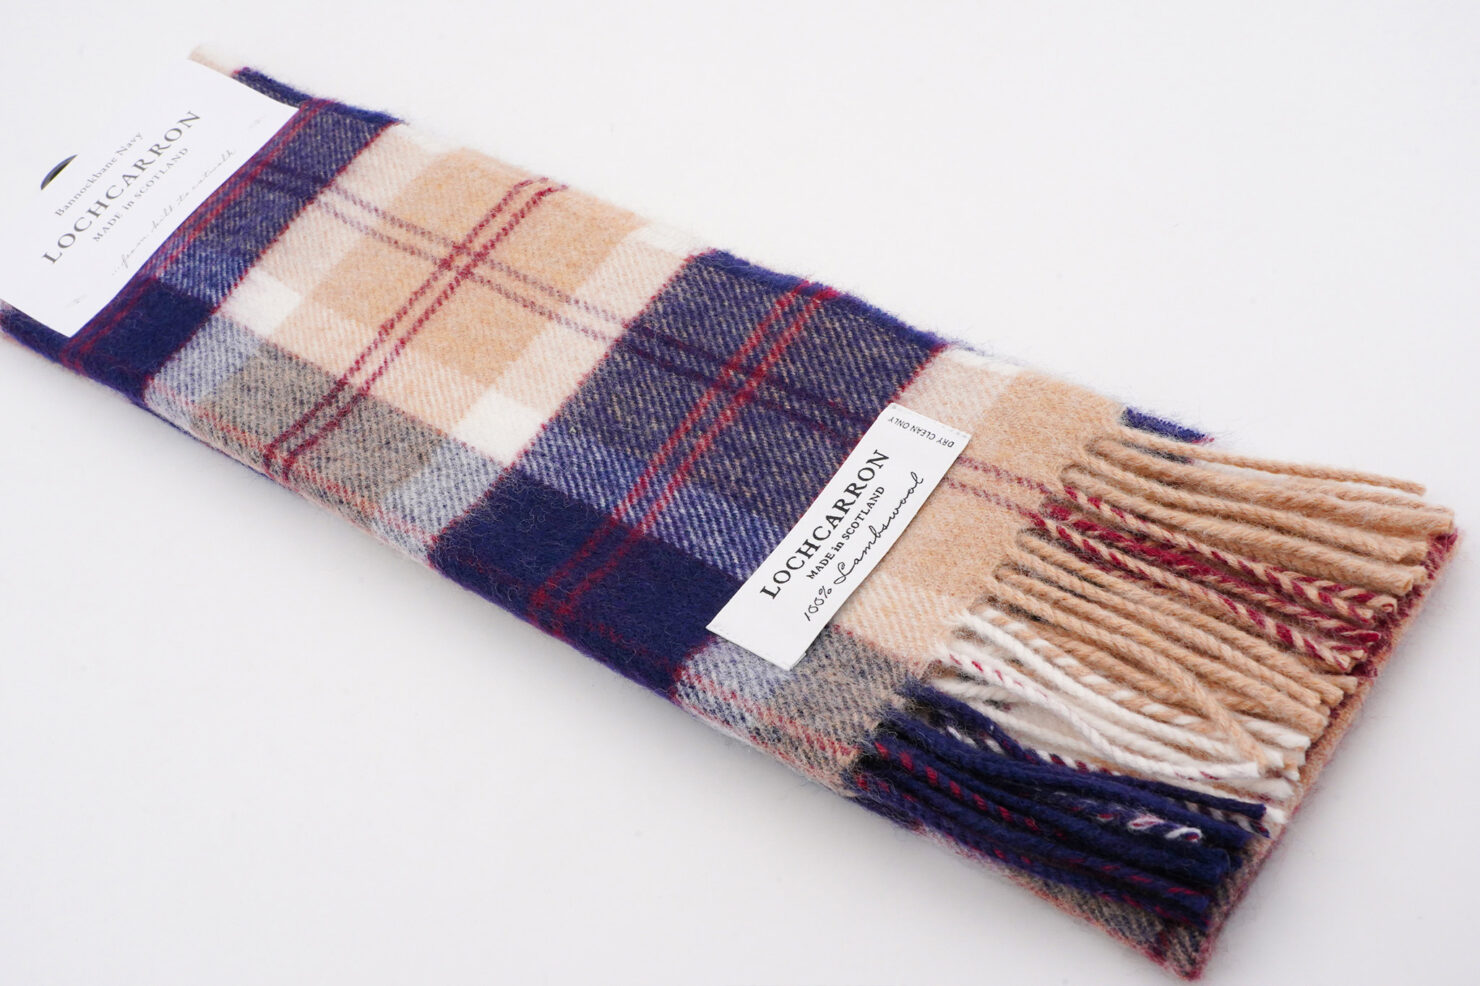 BRUSHWOOL LONG BANNOCKBANE SCARF - LOCHCARRON OF SCOTLAND